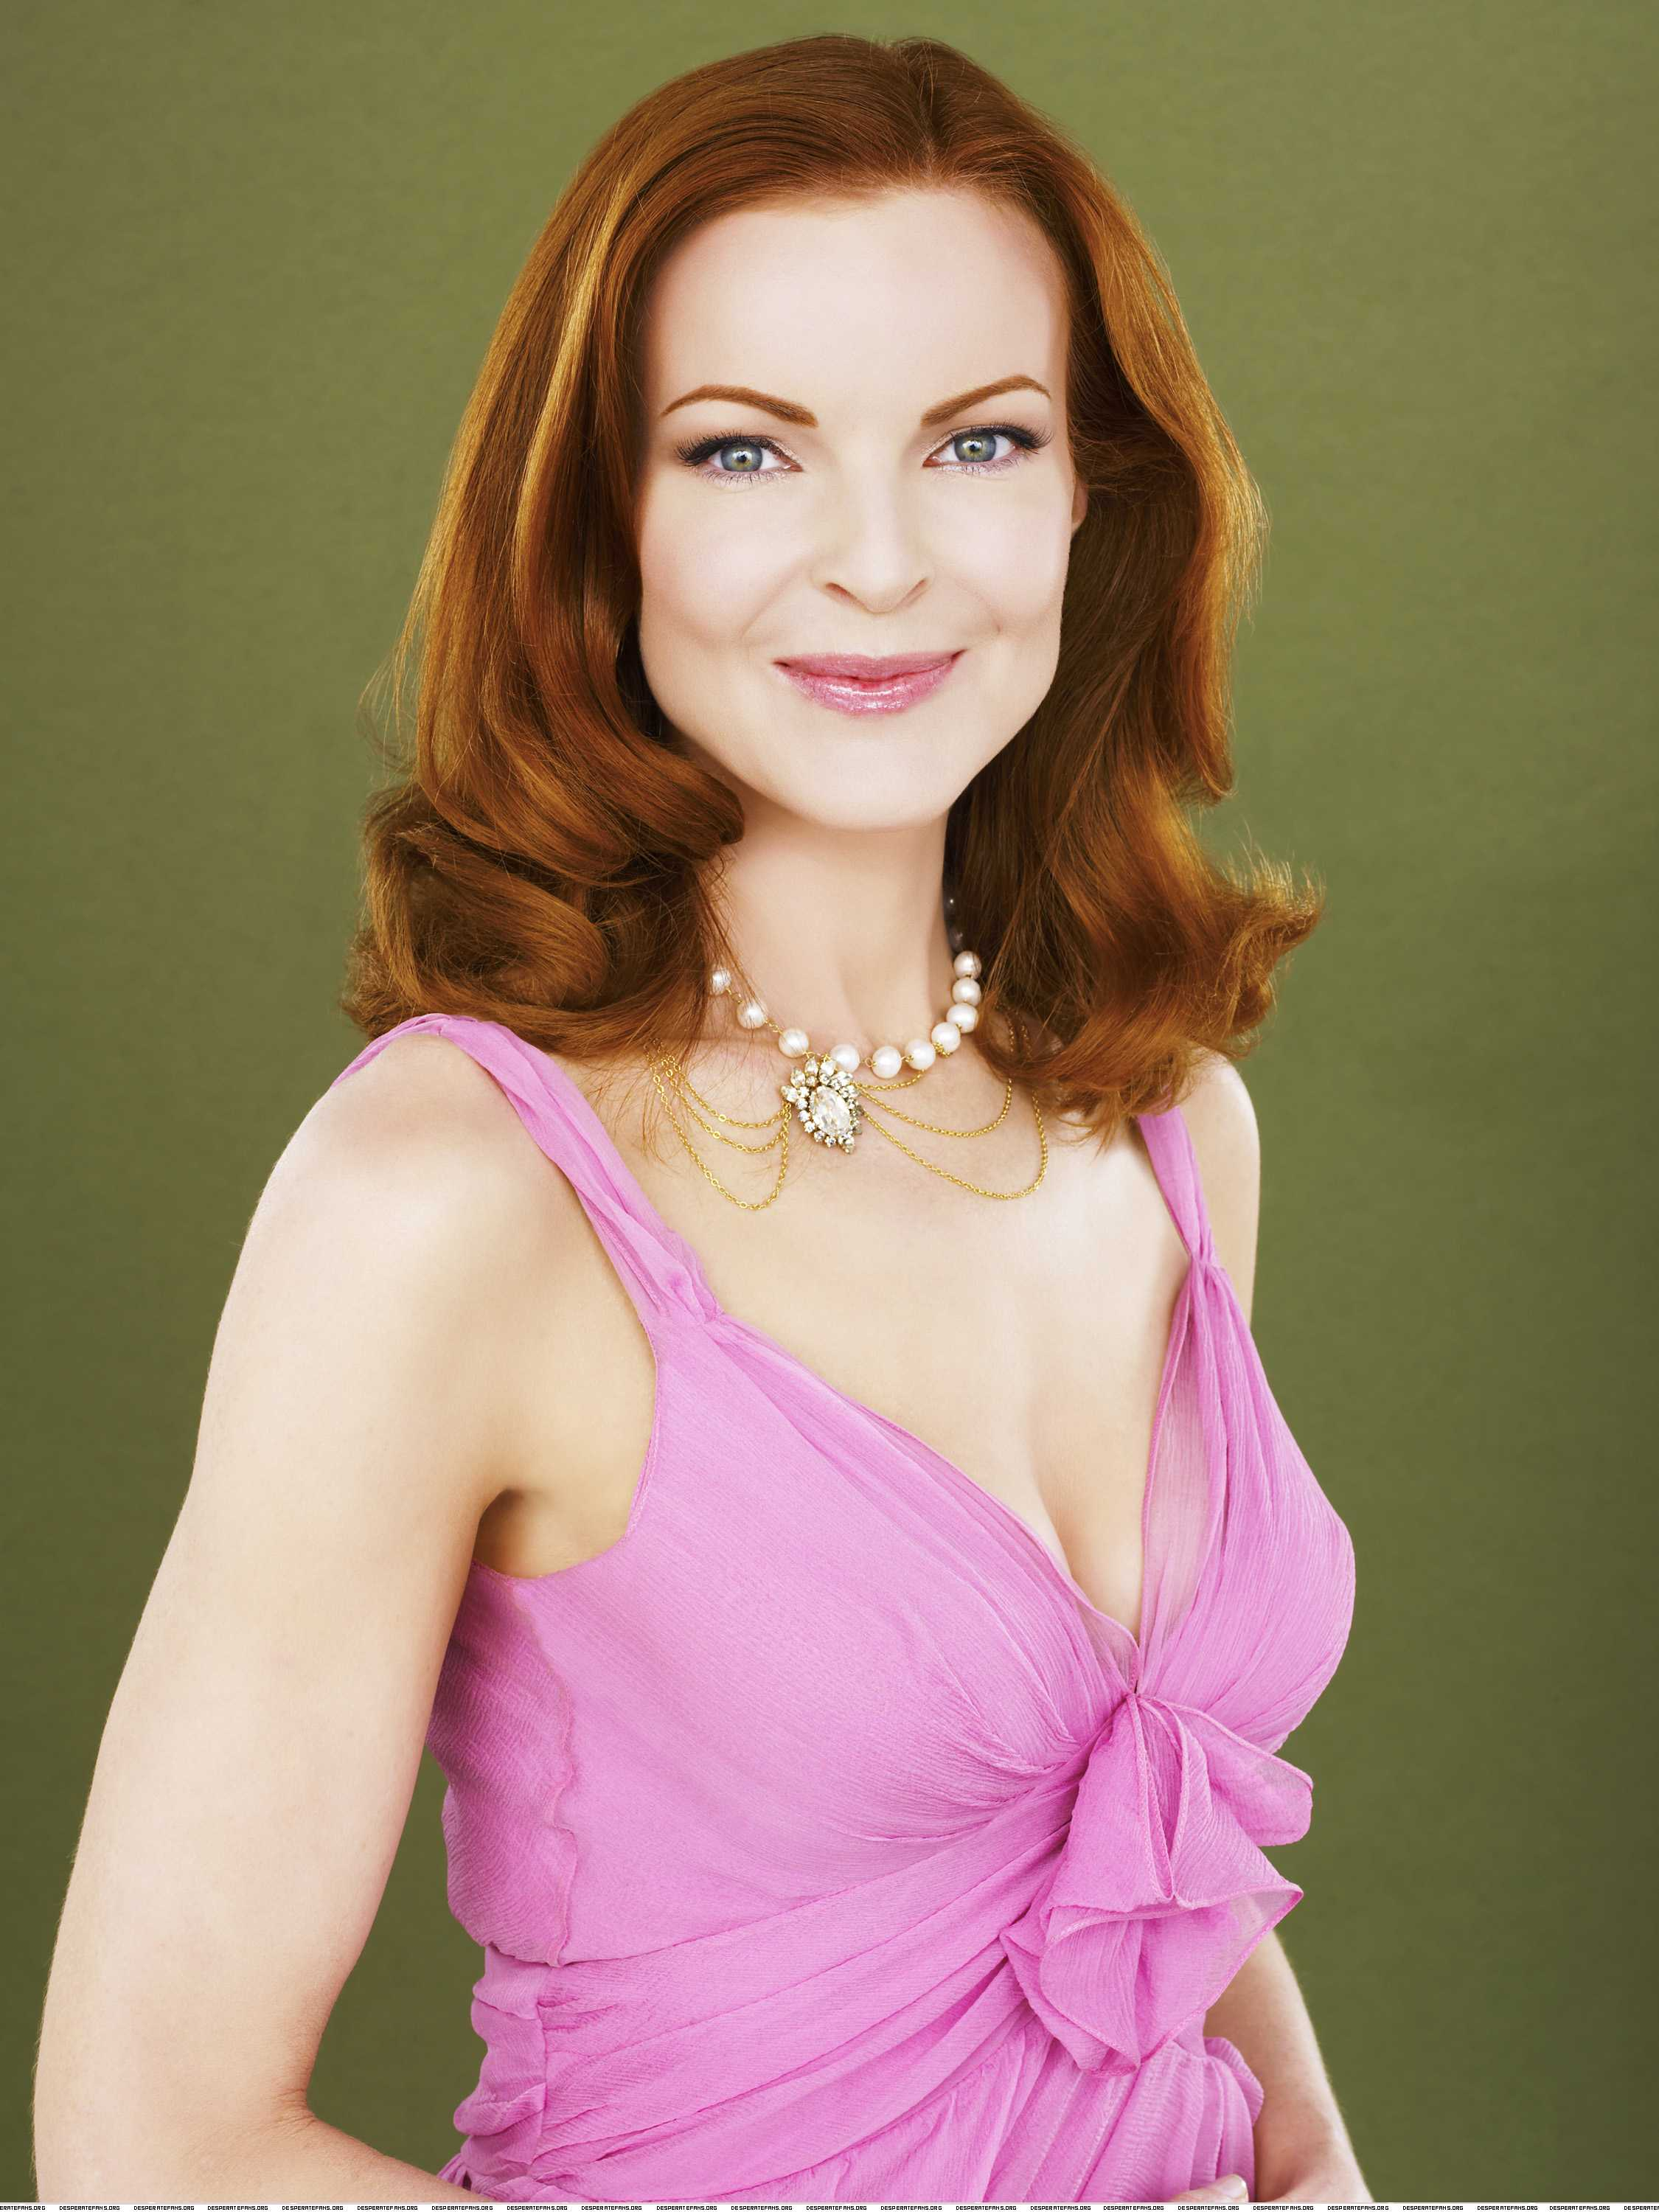 marcia cross interview 2016marcia cross 2016, marcia cross young, marcia cross gif, marcia cross height, marcia cross 2017, marcia cross melrose place, marcia cross wedding, marcia cross wiki, marcia cross natural hair color, marcia cross photoshoot, marcia cross interview 2016, marcia cross eye color, marcia cross filmographie, marcia cross imdb, marcia cross house address, marcia cross house, marcia cross diet, marcia cross beach, marcia cross twins, marcia cross instagram